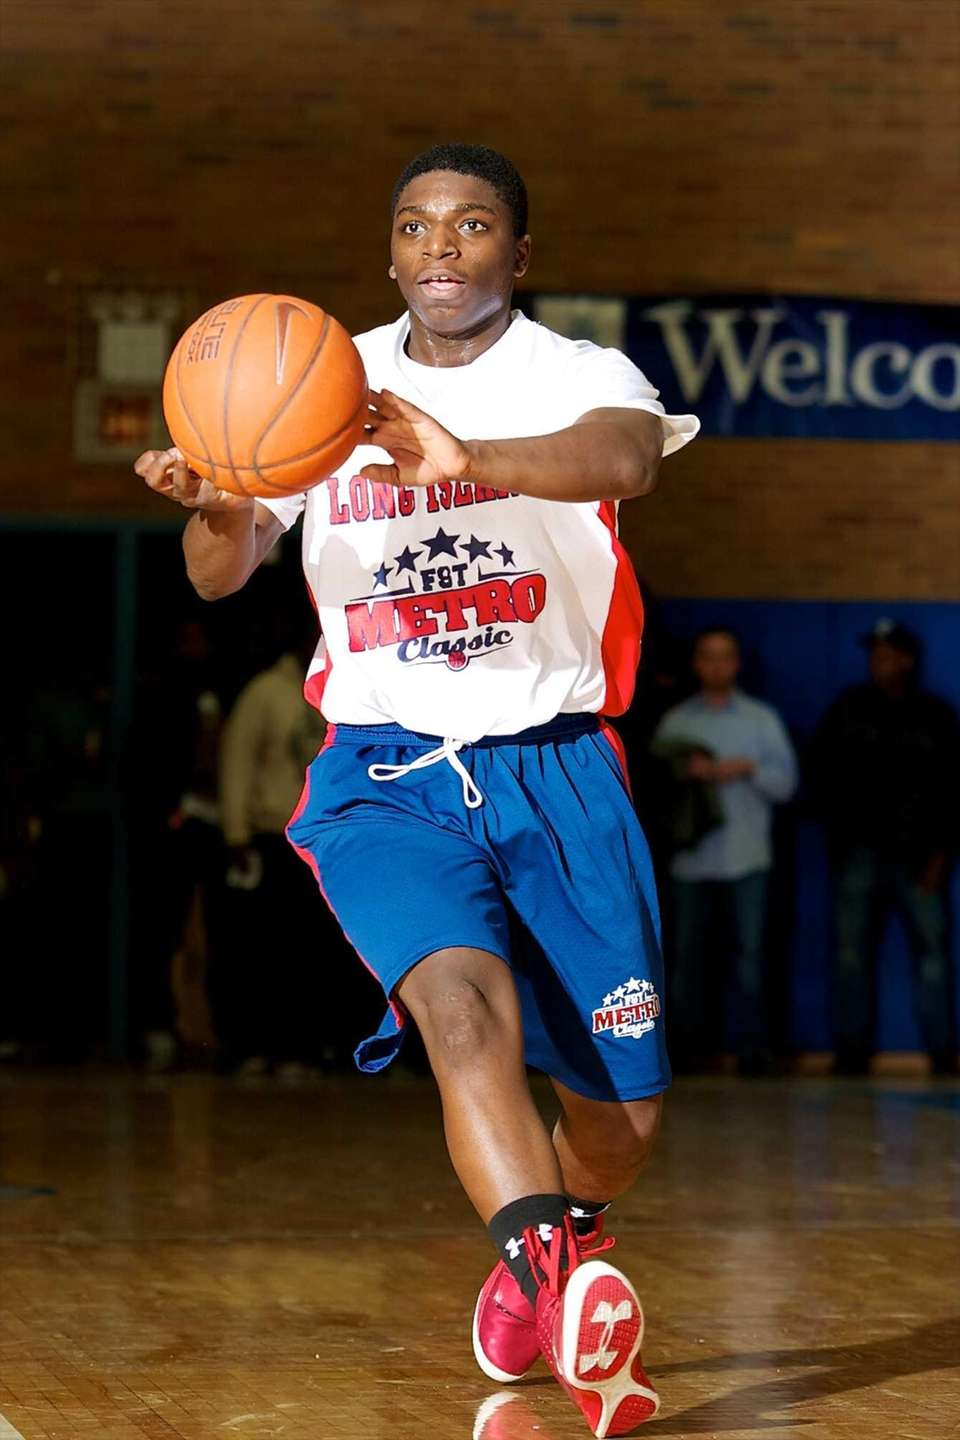 Mike Alston, a Long Island All-Star guard from